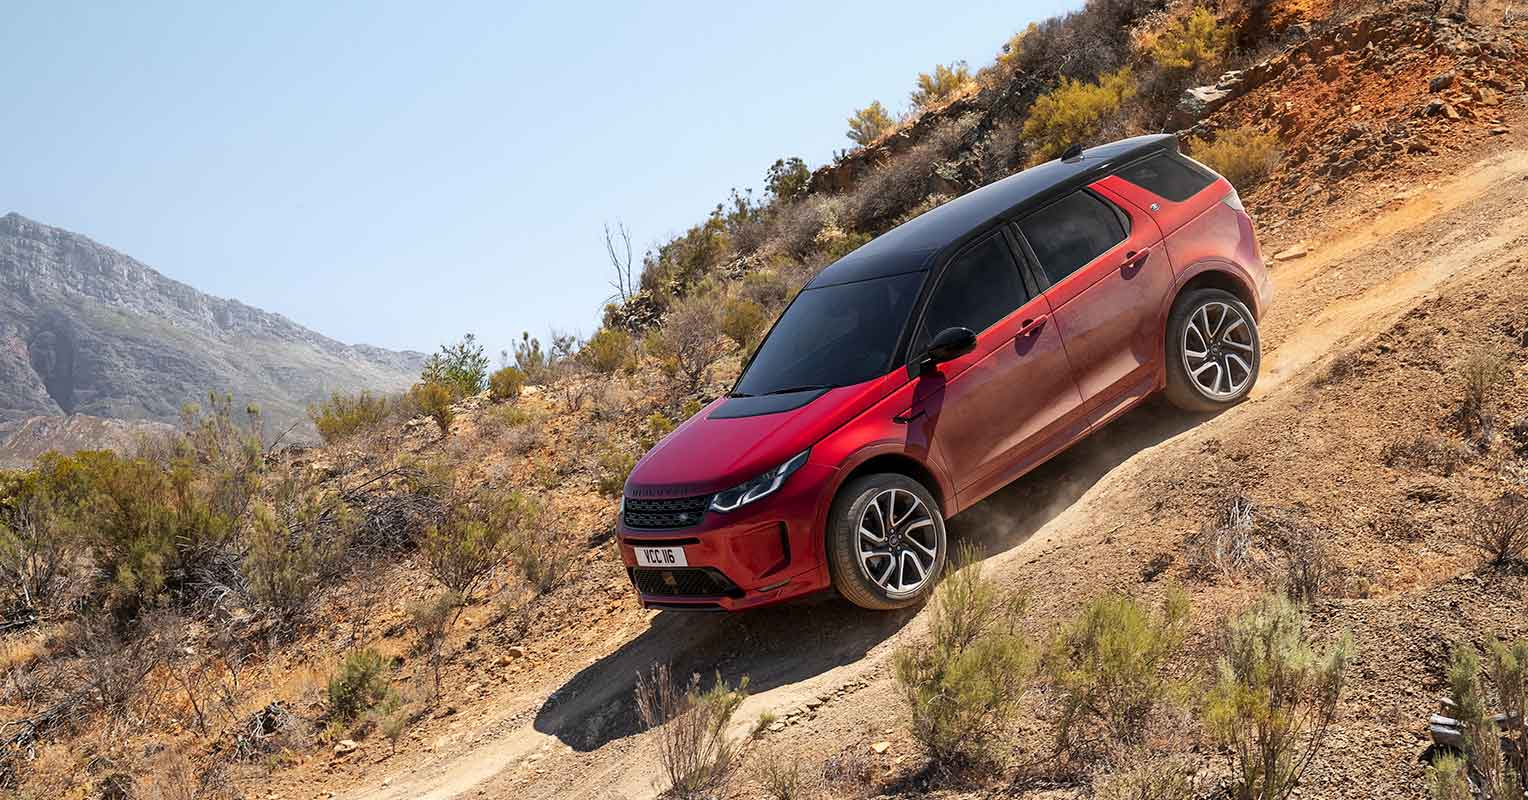 2020 Land Rover Discovery Sport Model